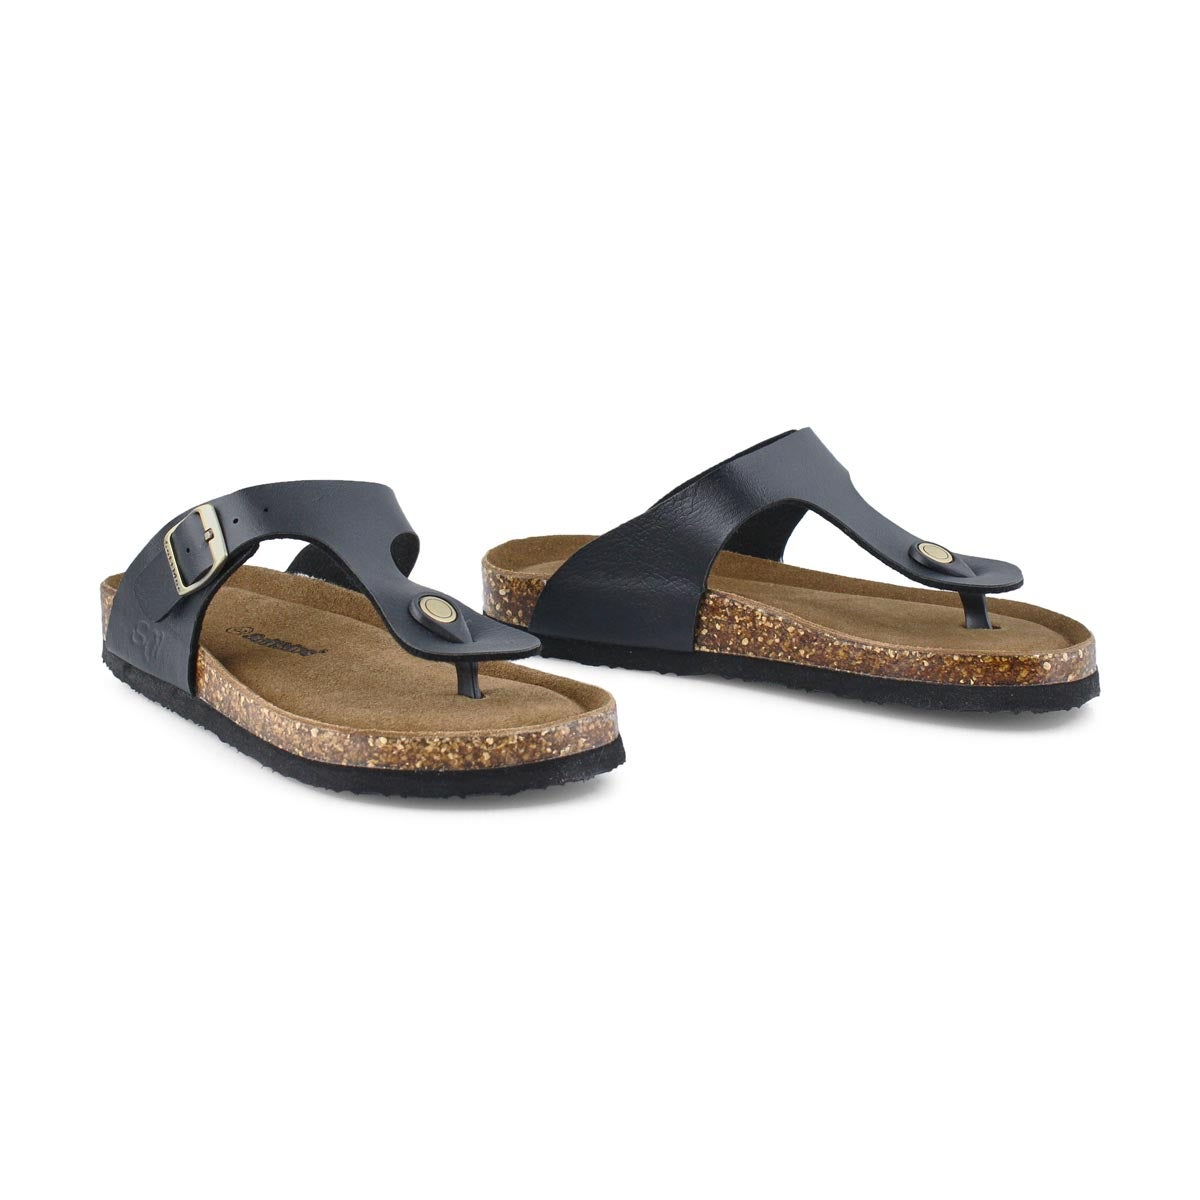 Grls Angy 6 blk memory foam thng sandal